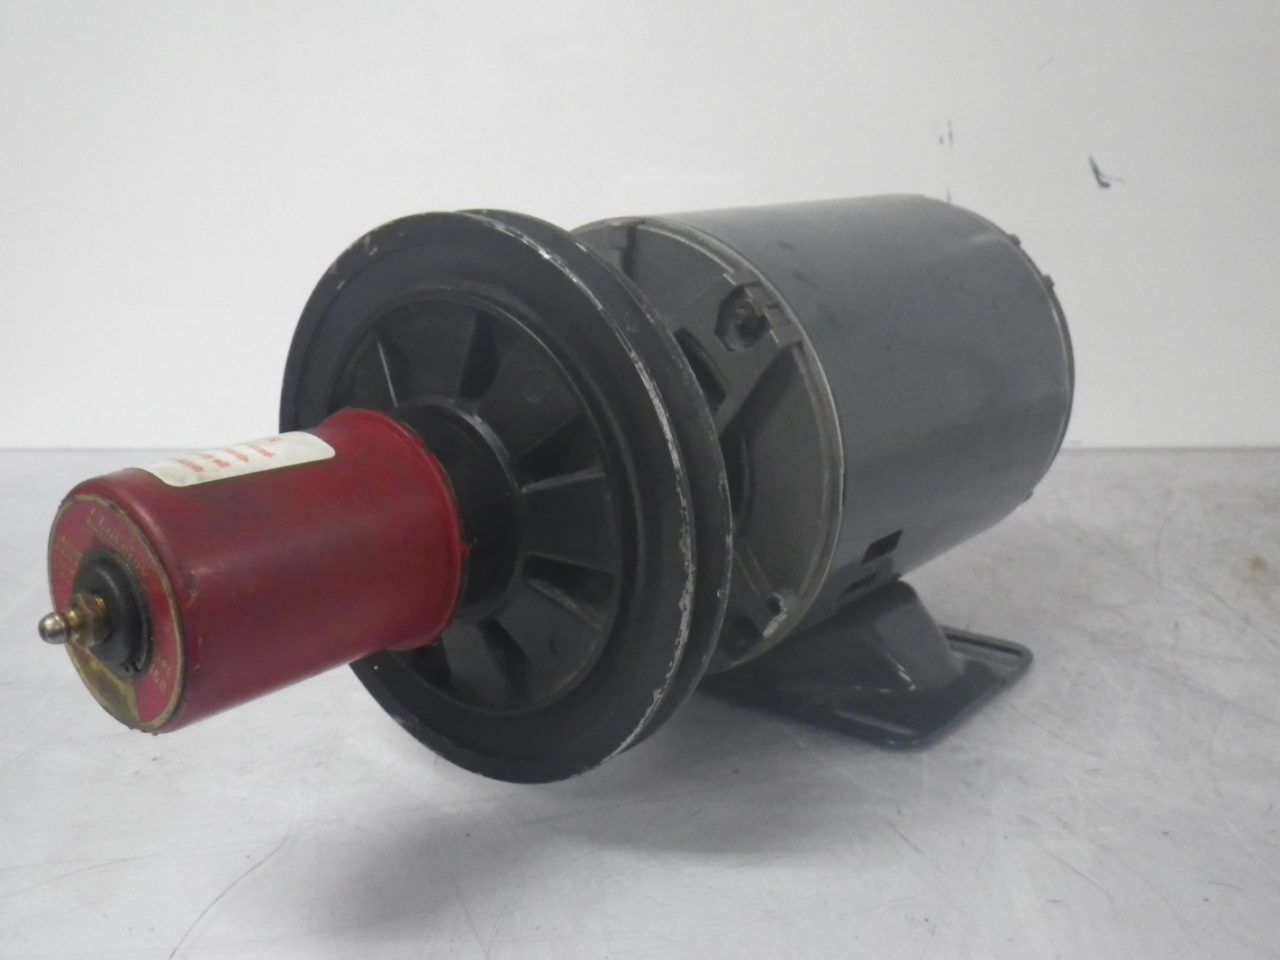 IMGP65595K36MN4B 160 58B GE Motor With LOVEJOY Pulley Type 160 58b 12hp 208-230460v 1725rpm (3)